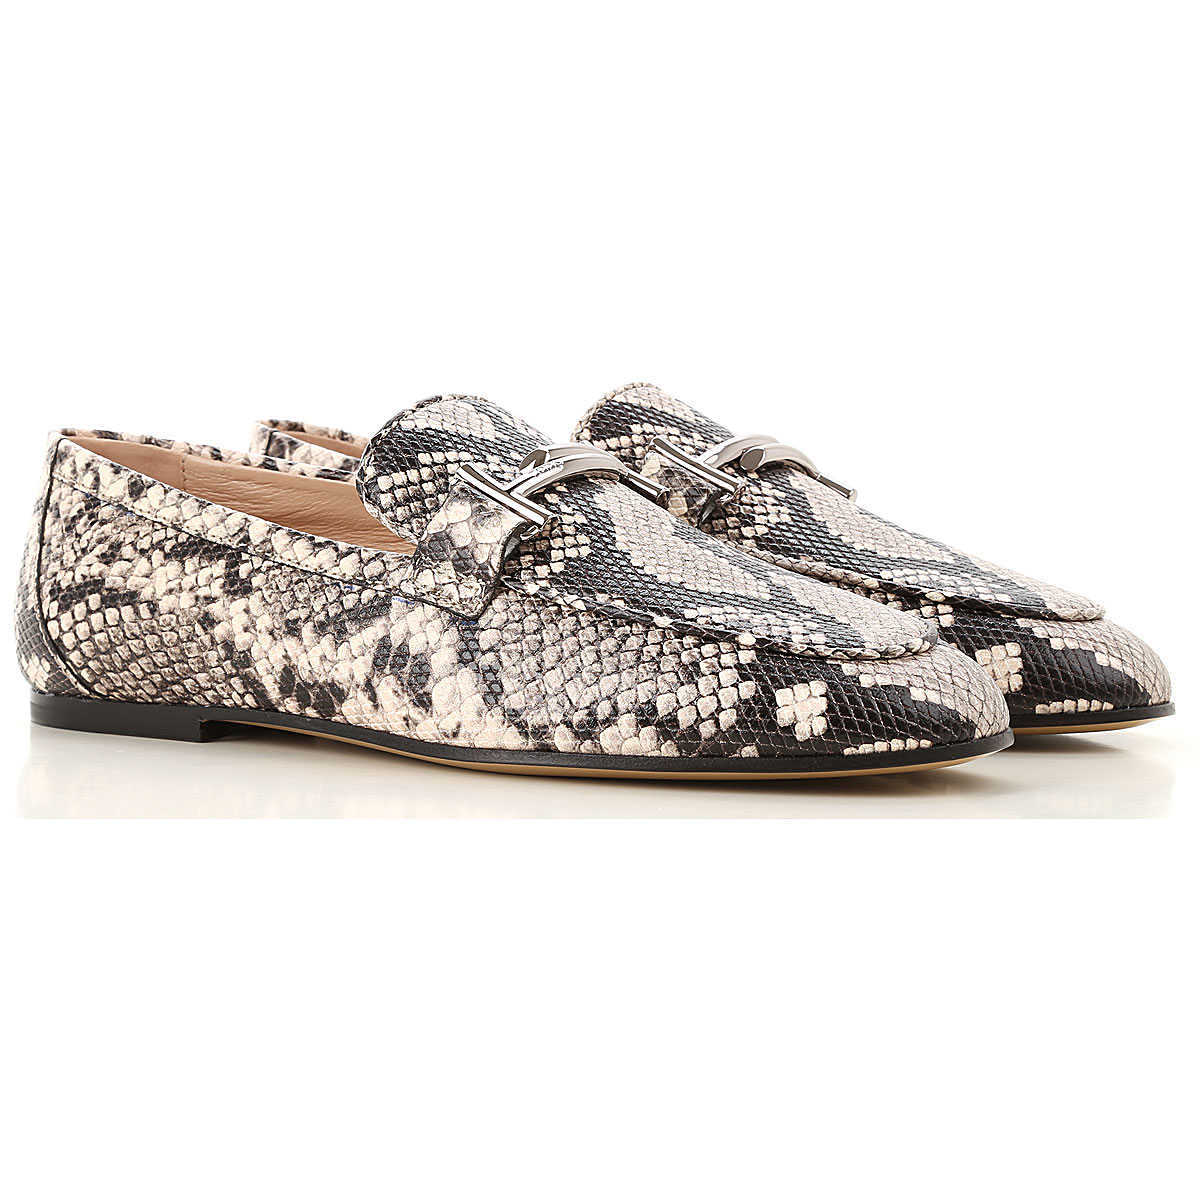 Tods Loafers for Women Stone Grey - GOOFASH